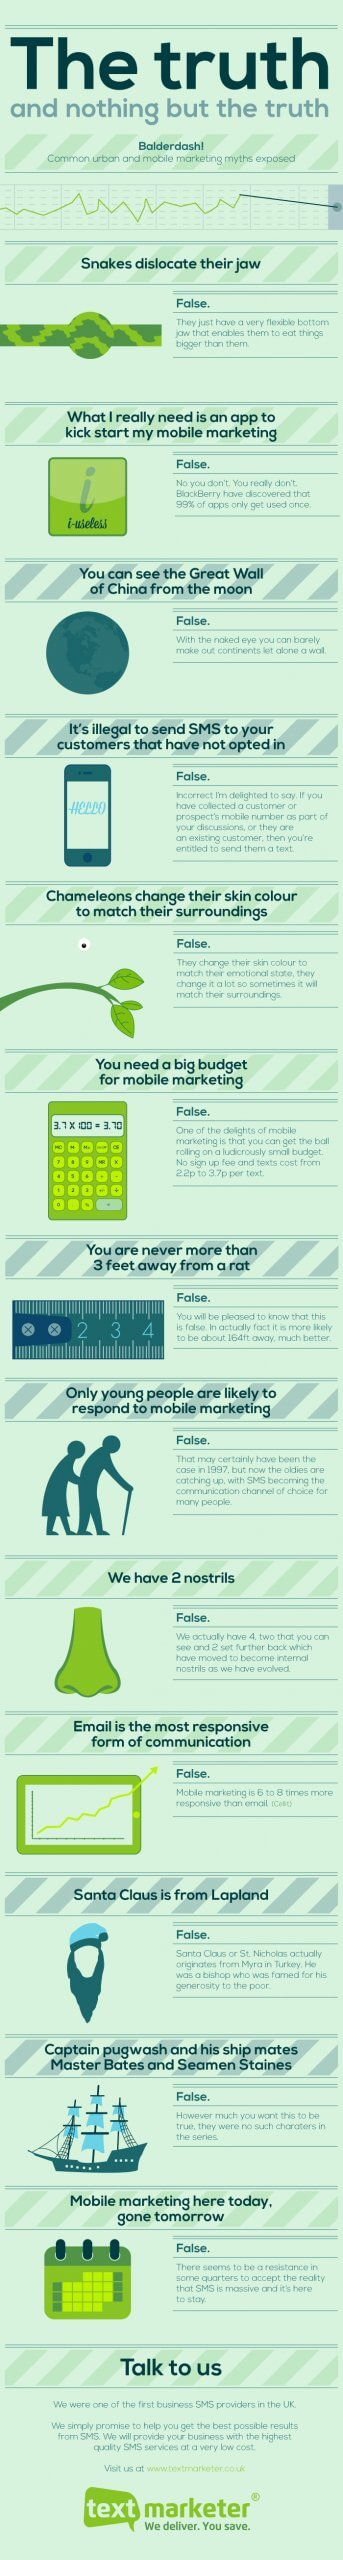 Text Marketer SMS marketing myths busted infographic